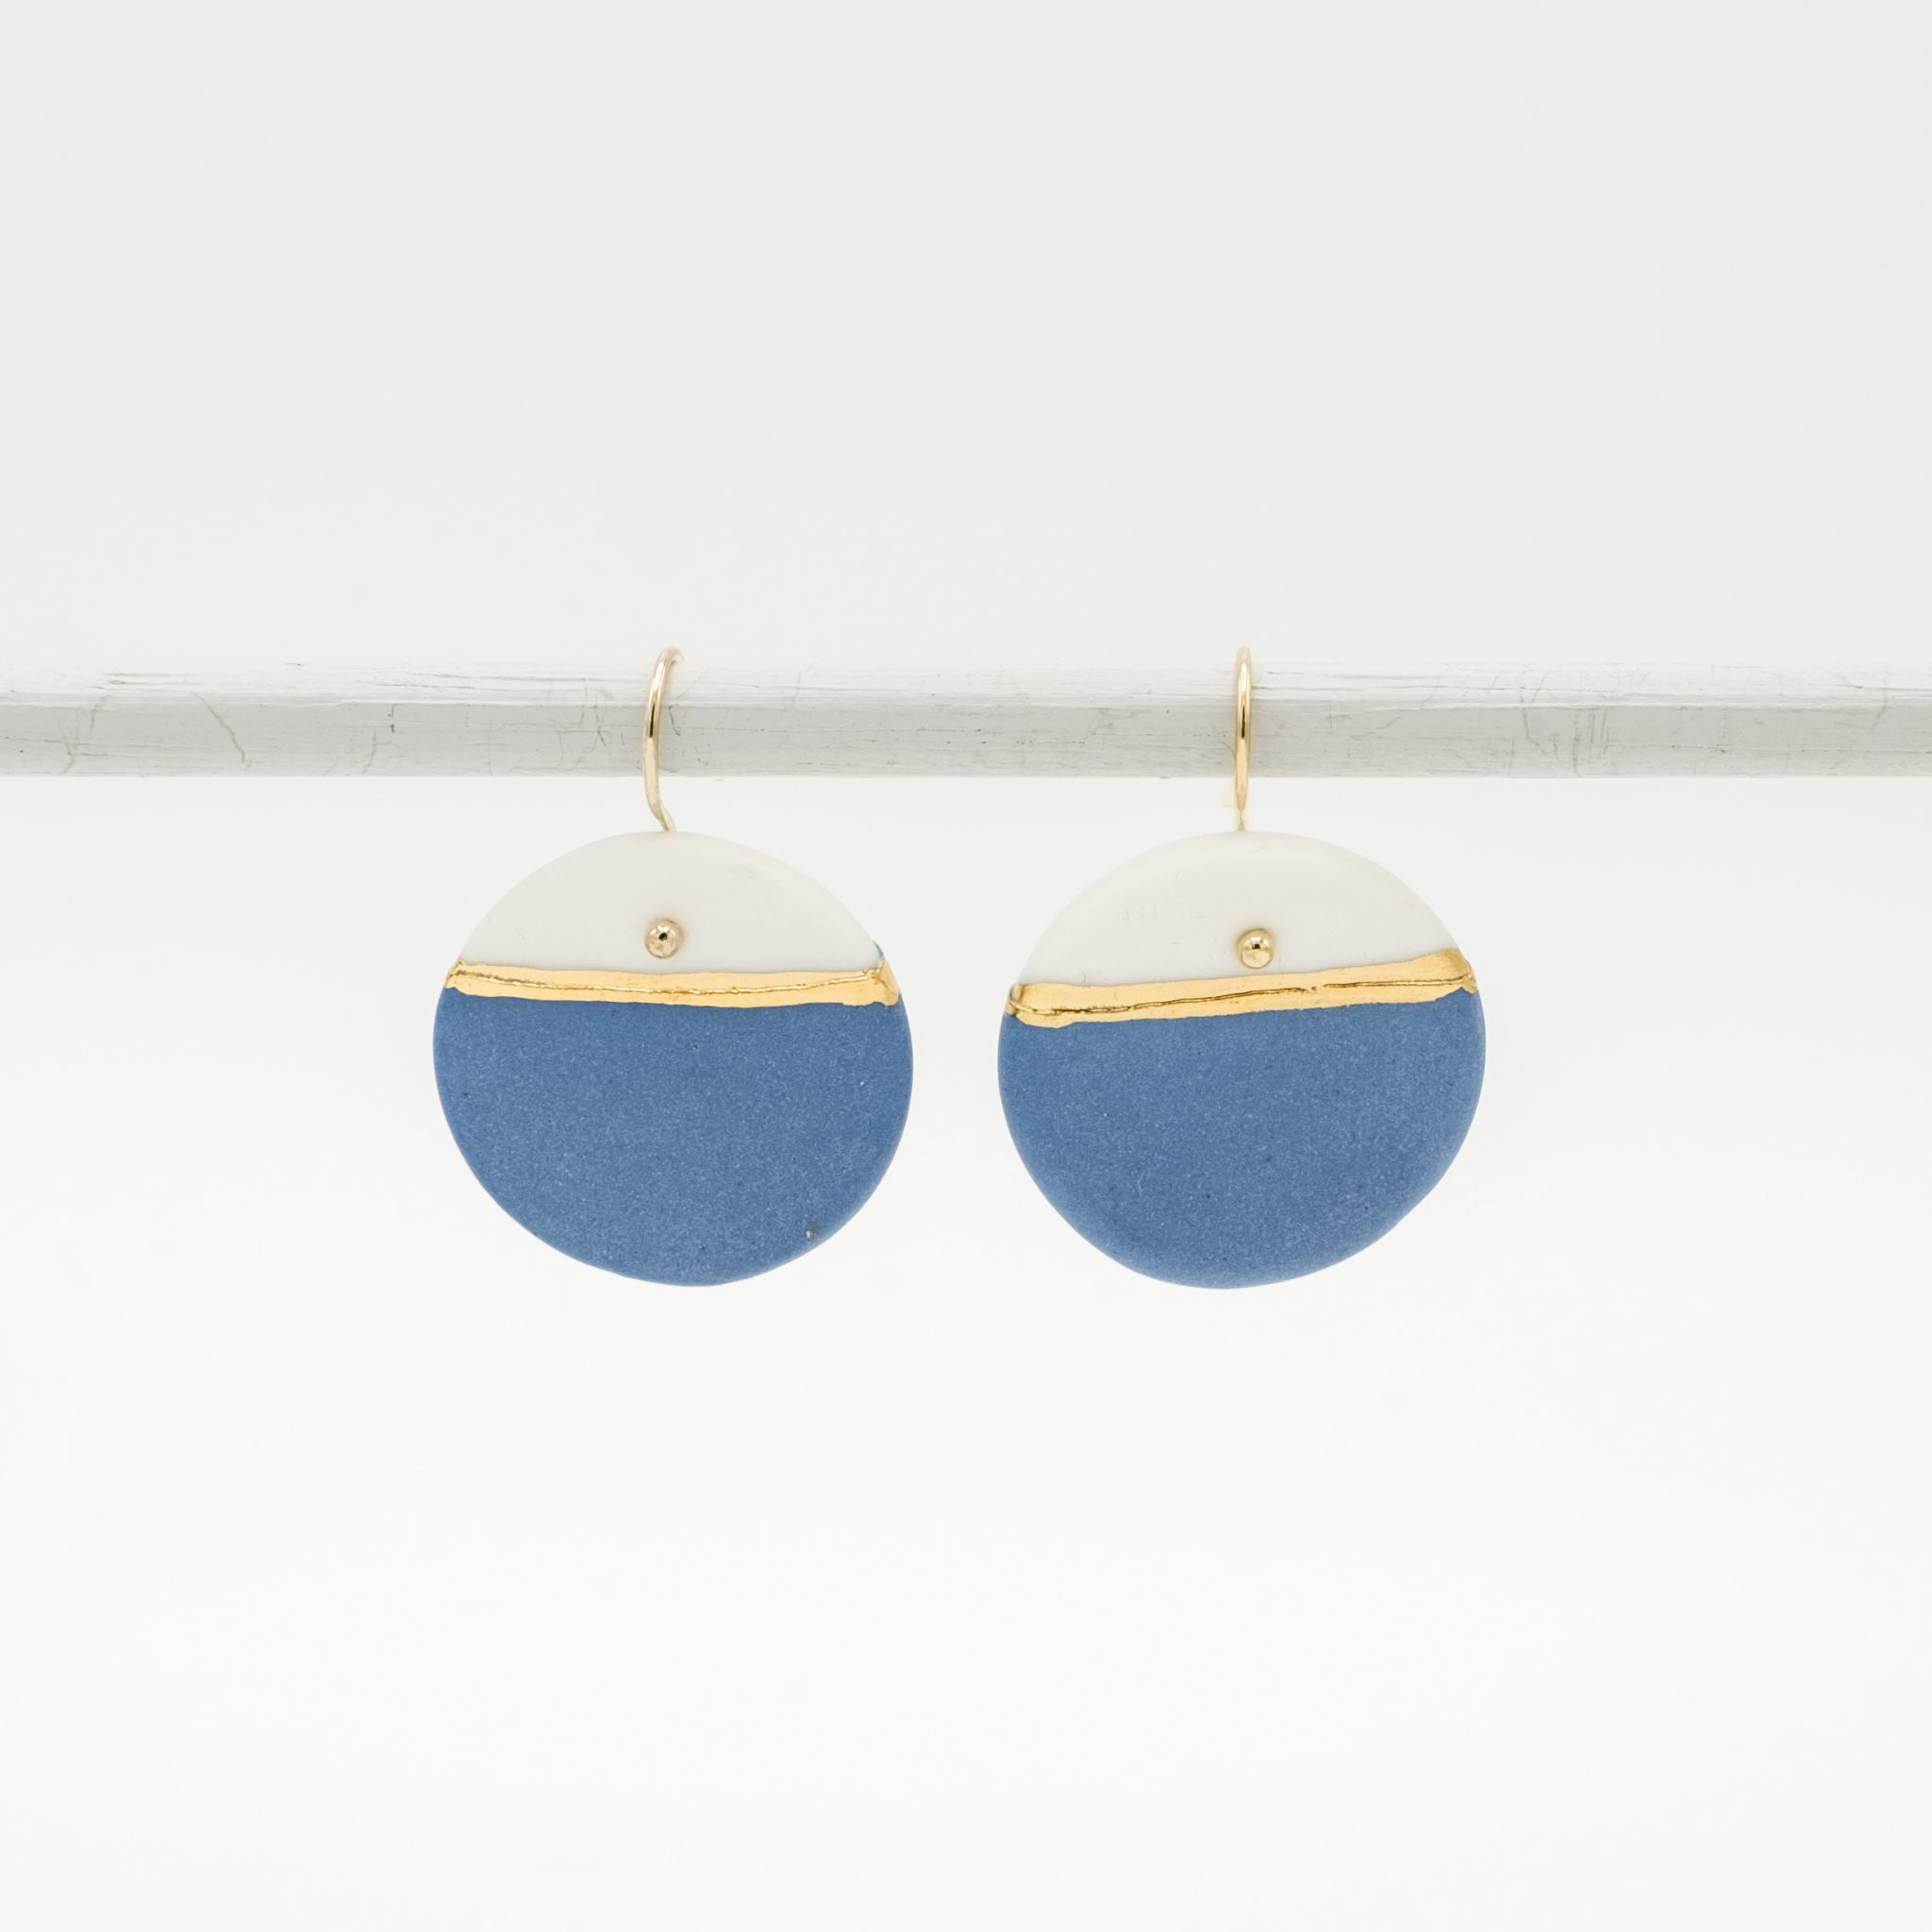 handmade porcelain earrings blue gold horizon